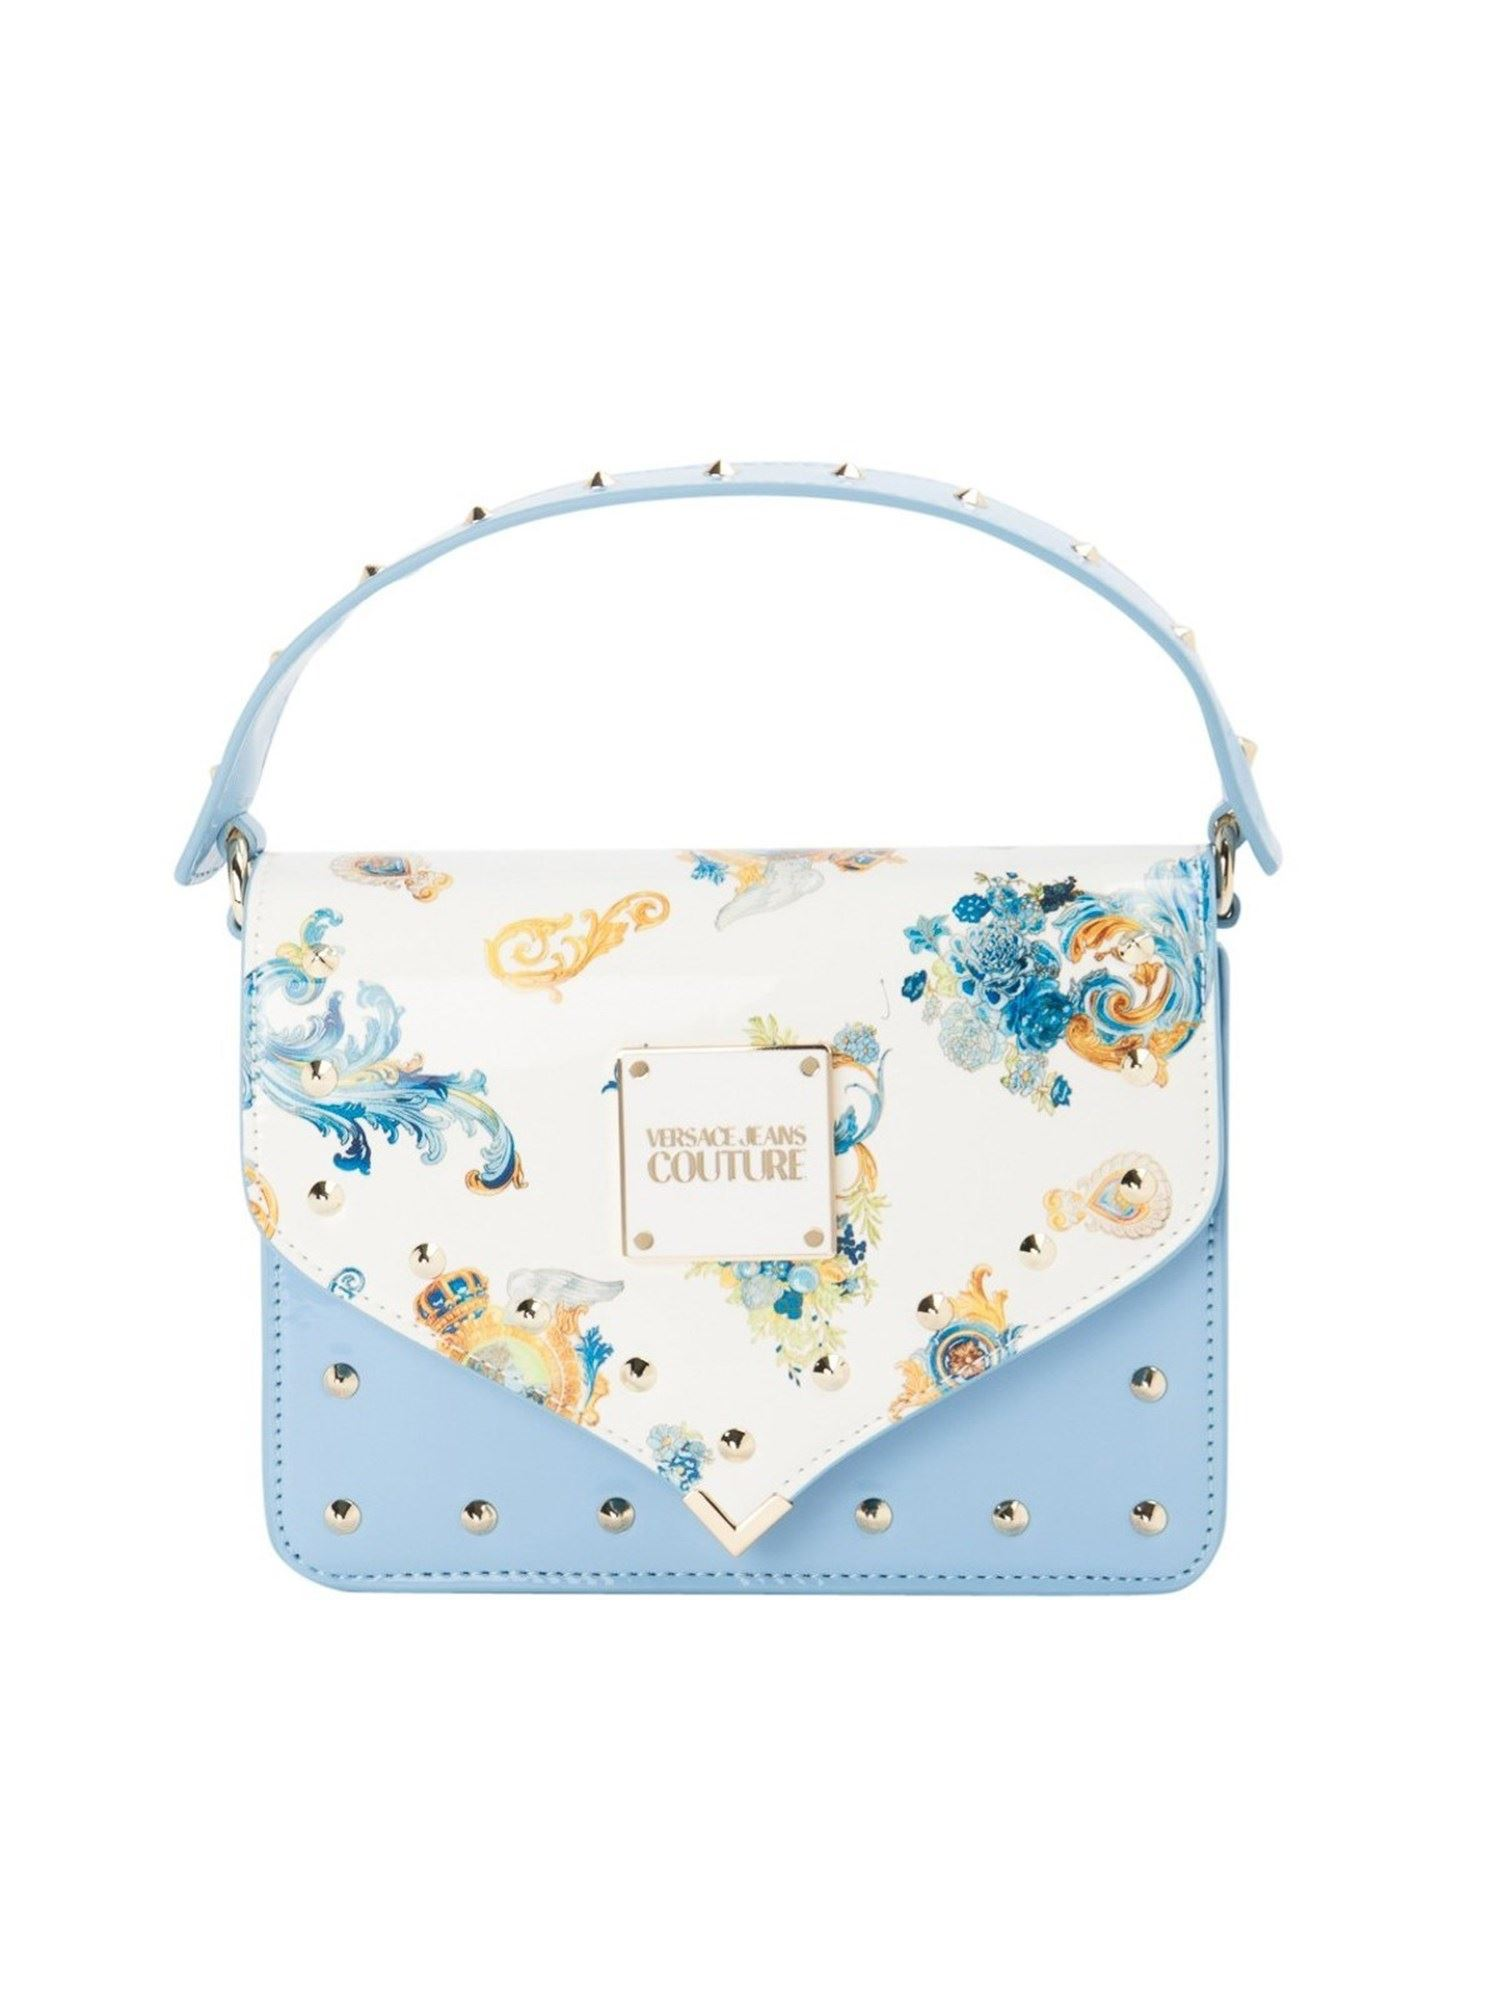 Versace Jeans Couture Crossbody bags FLAP CROSSBODY BAG IN LIGHT BLUE